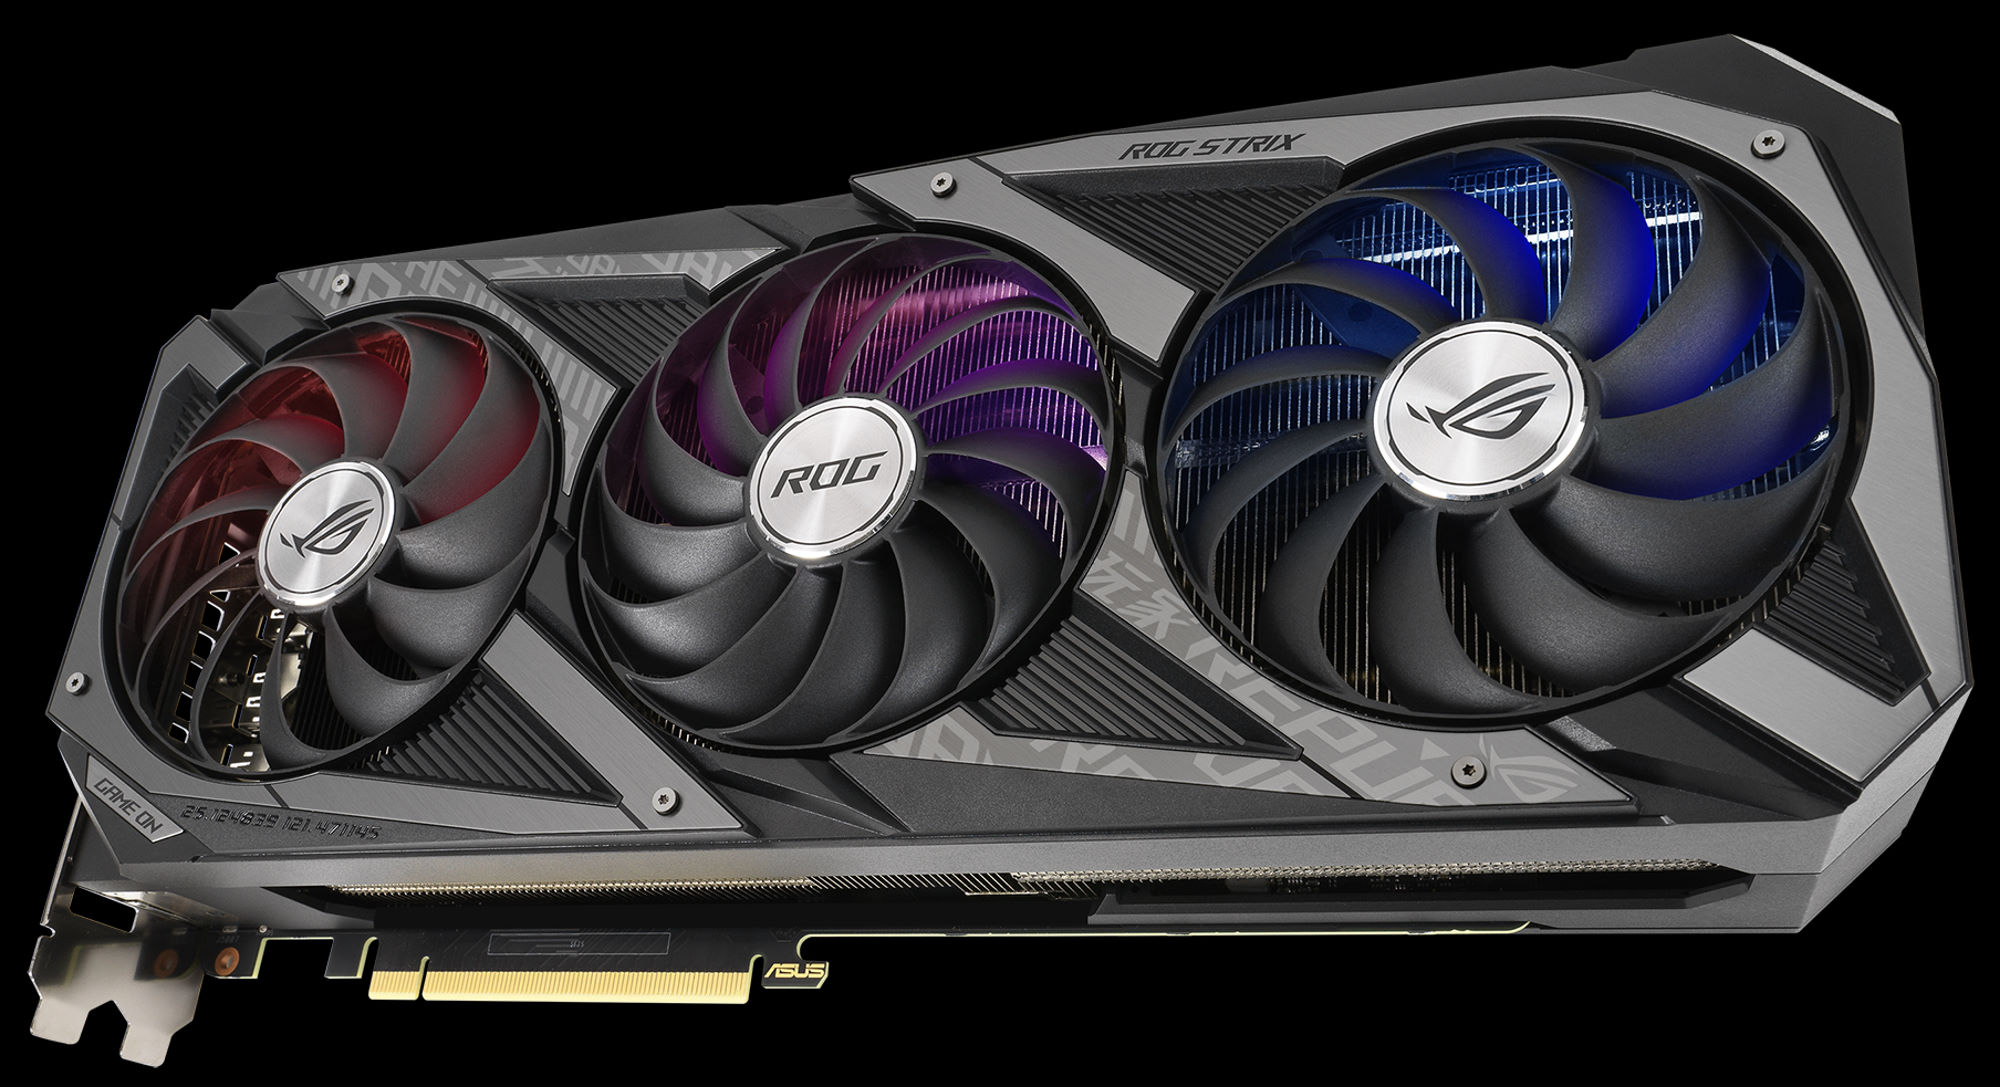 ASUS GeForce RTX 3060 Ti graphics cards are ready for every build with ROG  Strix, TUF Gaming, Dual, Dual Mini, and KO | ROG - Republic of Gamers Global